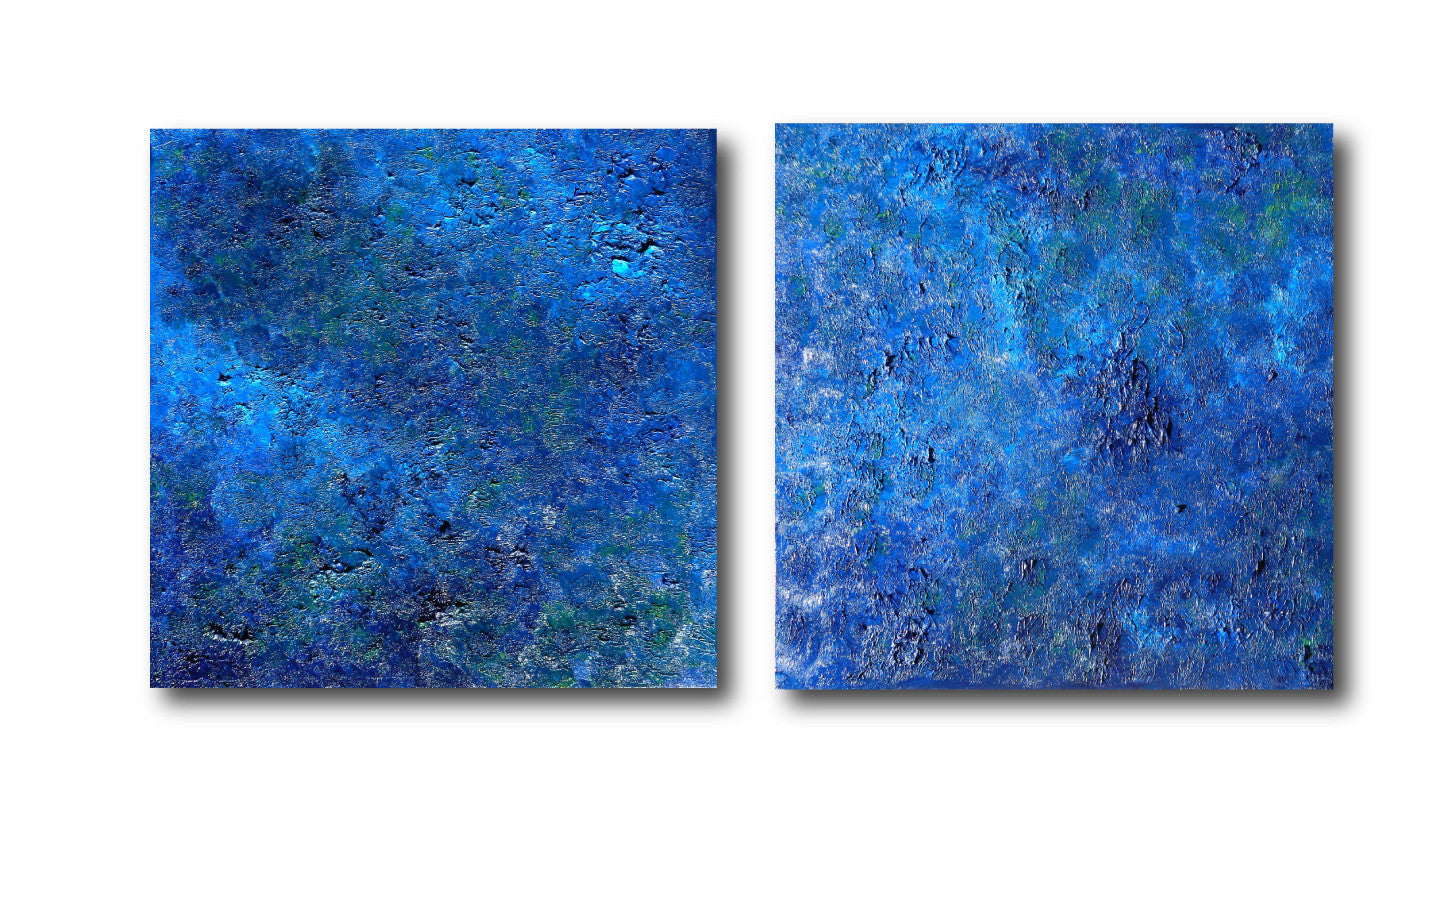 Pooling Oceans Glory diptych Original Blue Artwork + Large Oil Landscape + Seascape Painting + Blue Painting + Blue Art #timhovdefineart